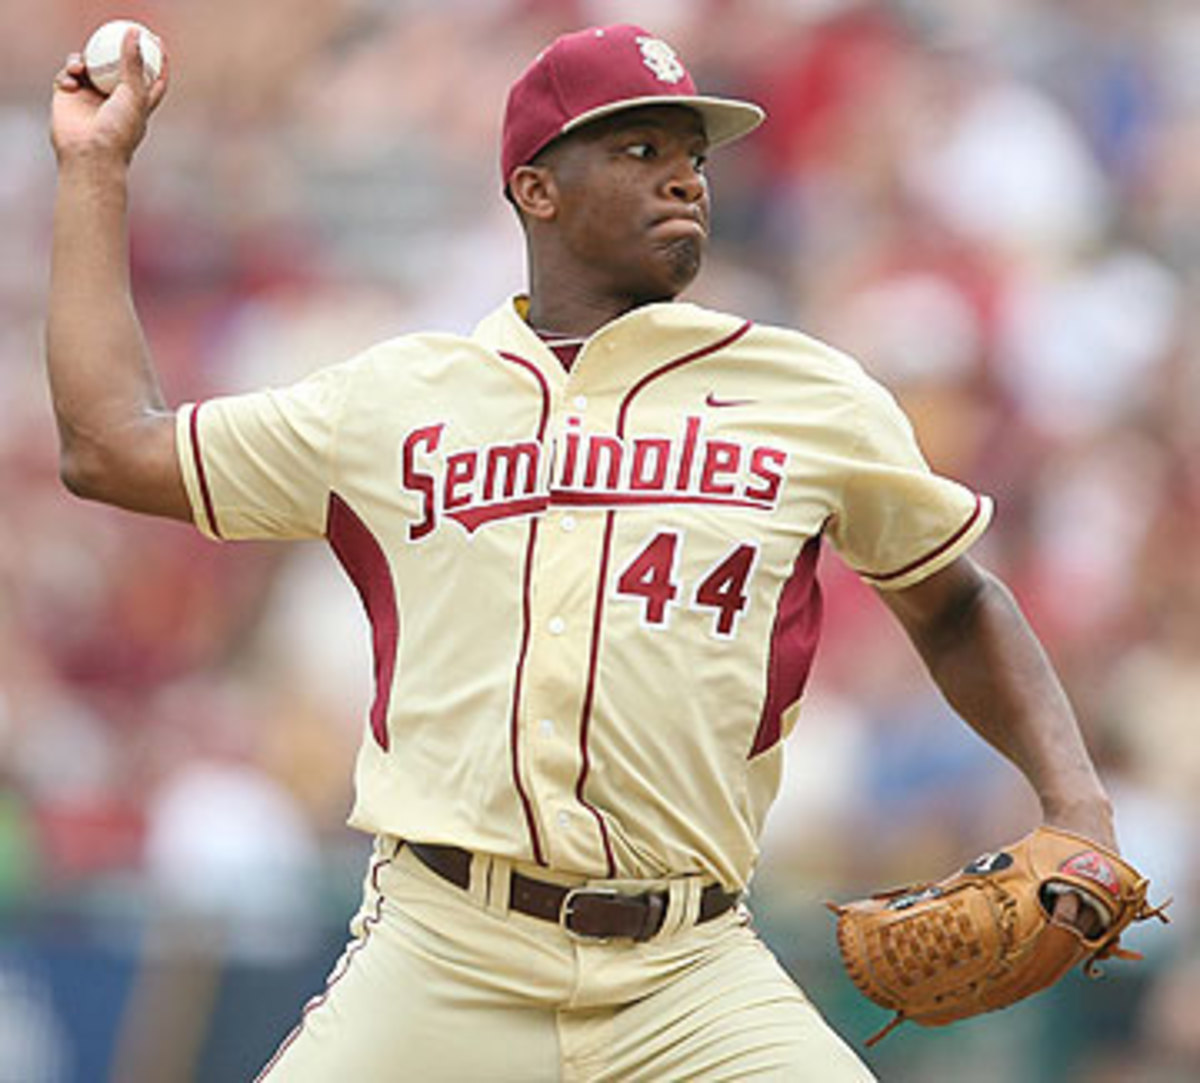 Winston had a 1.08 ERA and held opponents to a .154 batting average as a relief pitcher for the Noles last year. (Stephen M. Dowell/Getty Images)